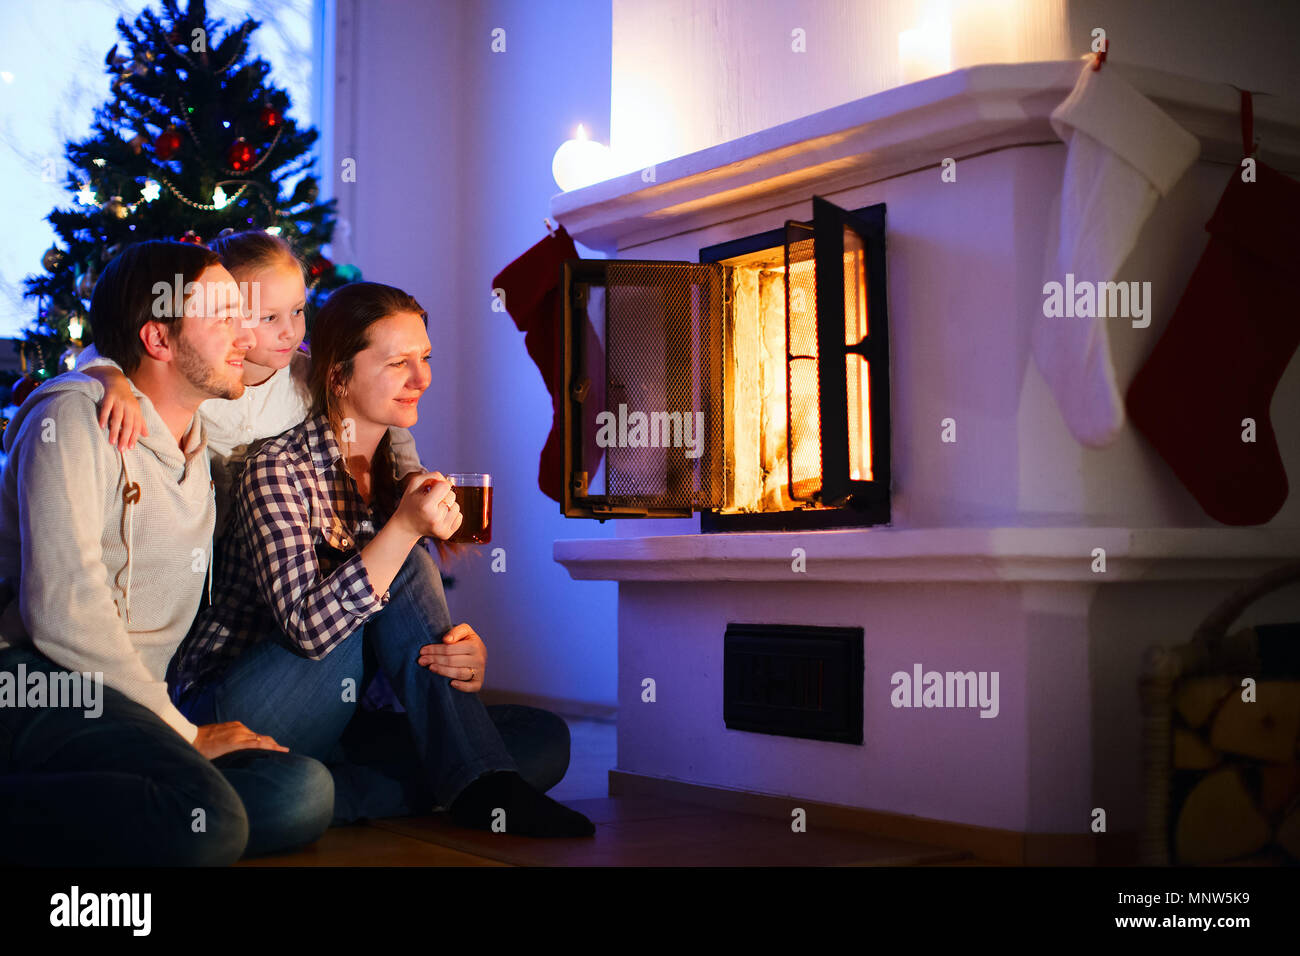 Family sitting by a fireplace in their family home on Christmas eve - Stock Image